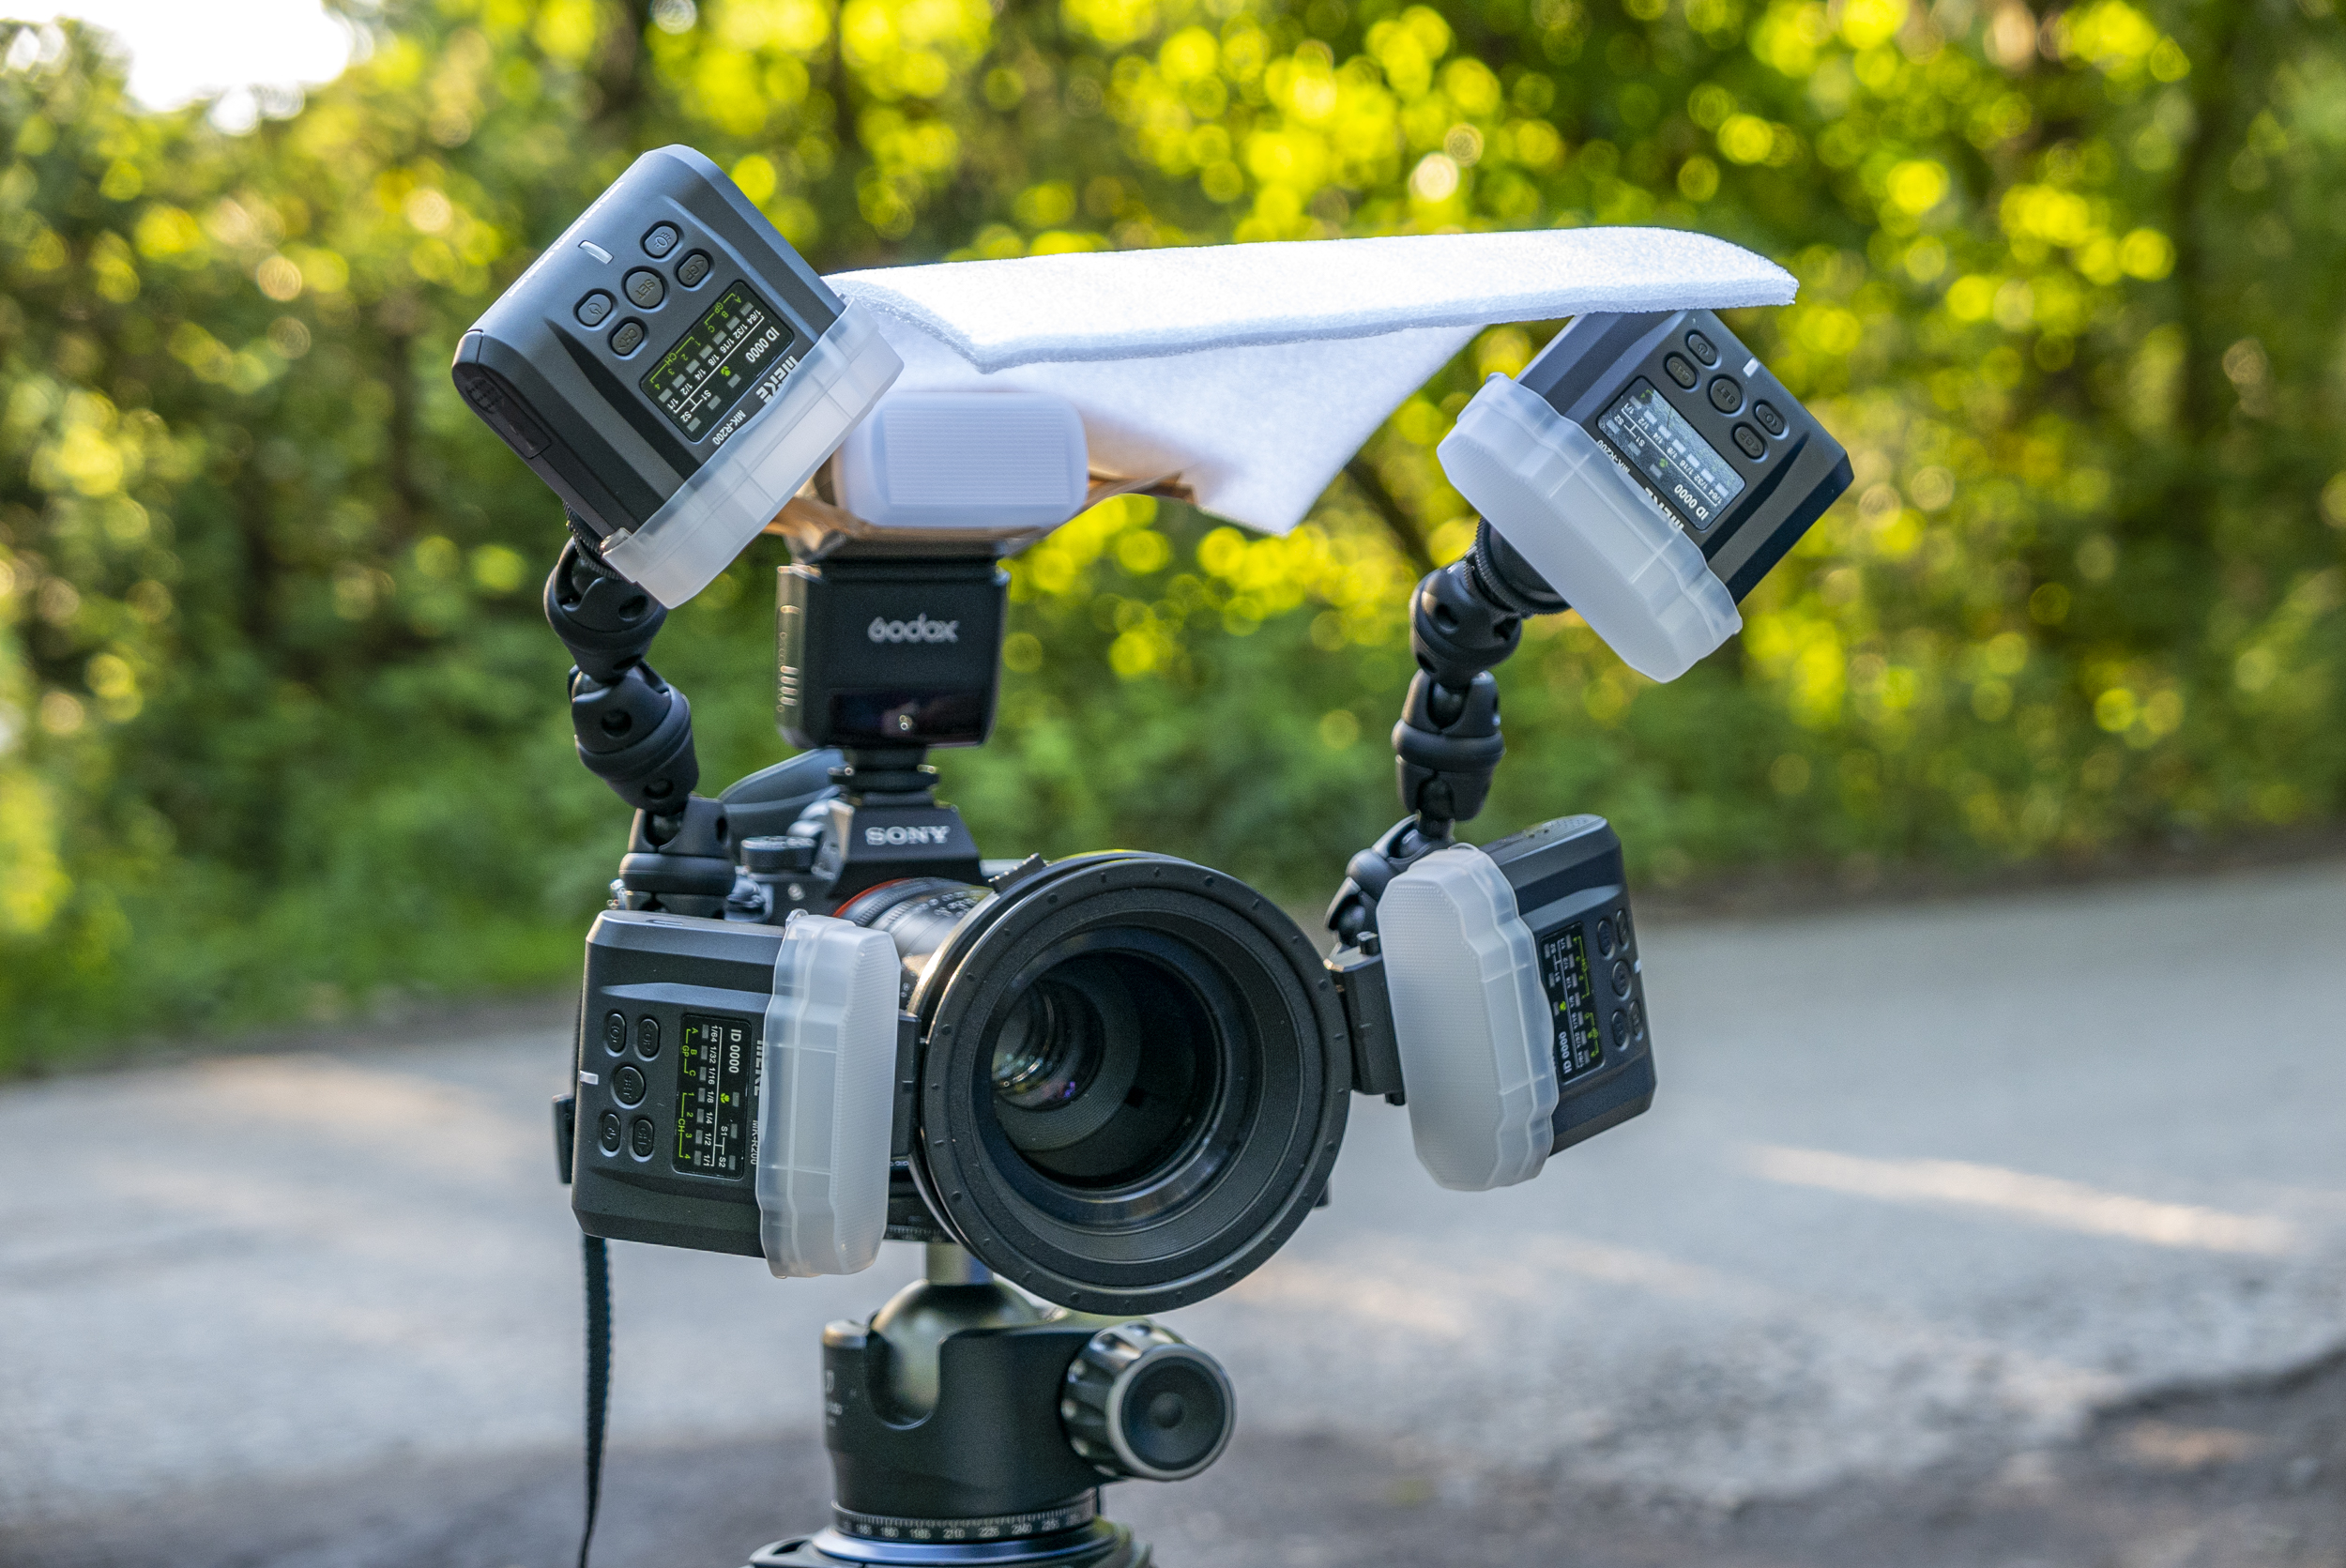 For all the true macro shots or really close ups, this is the lighting setup I used.